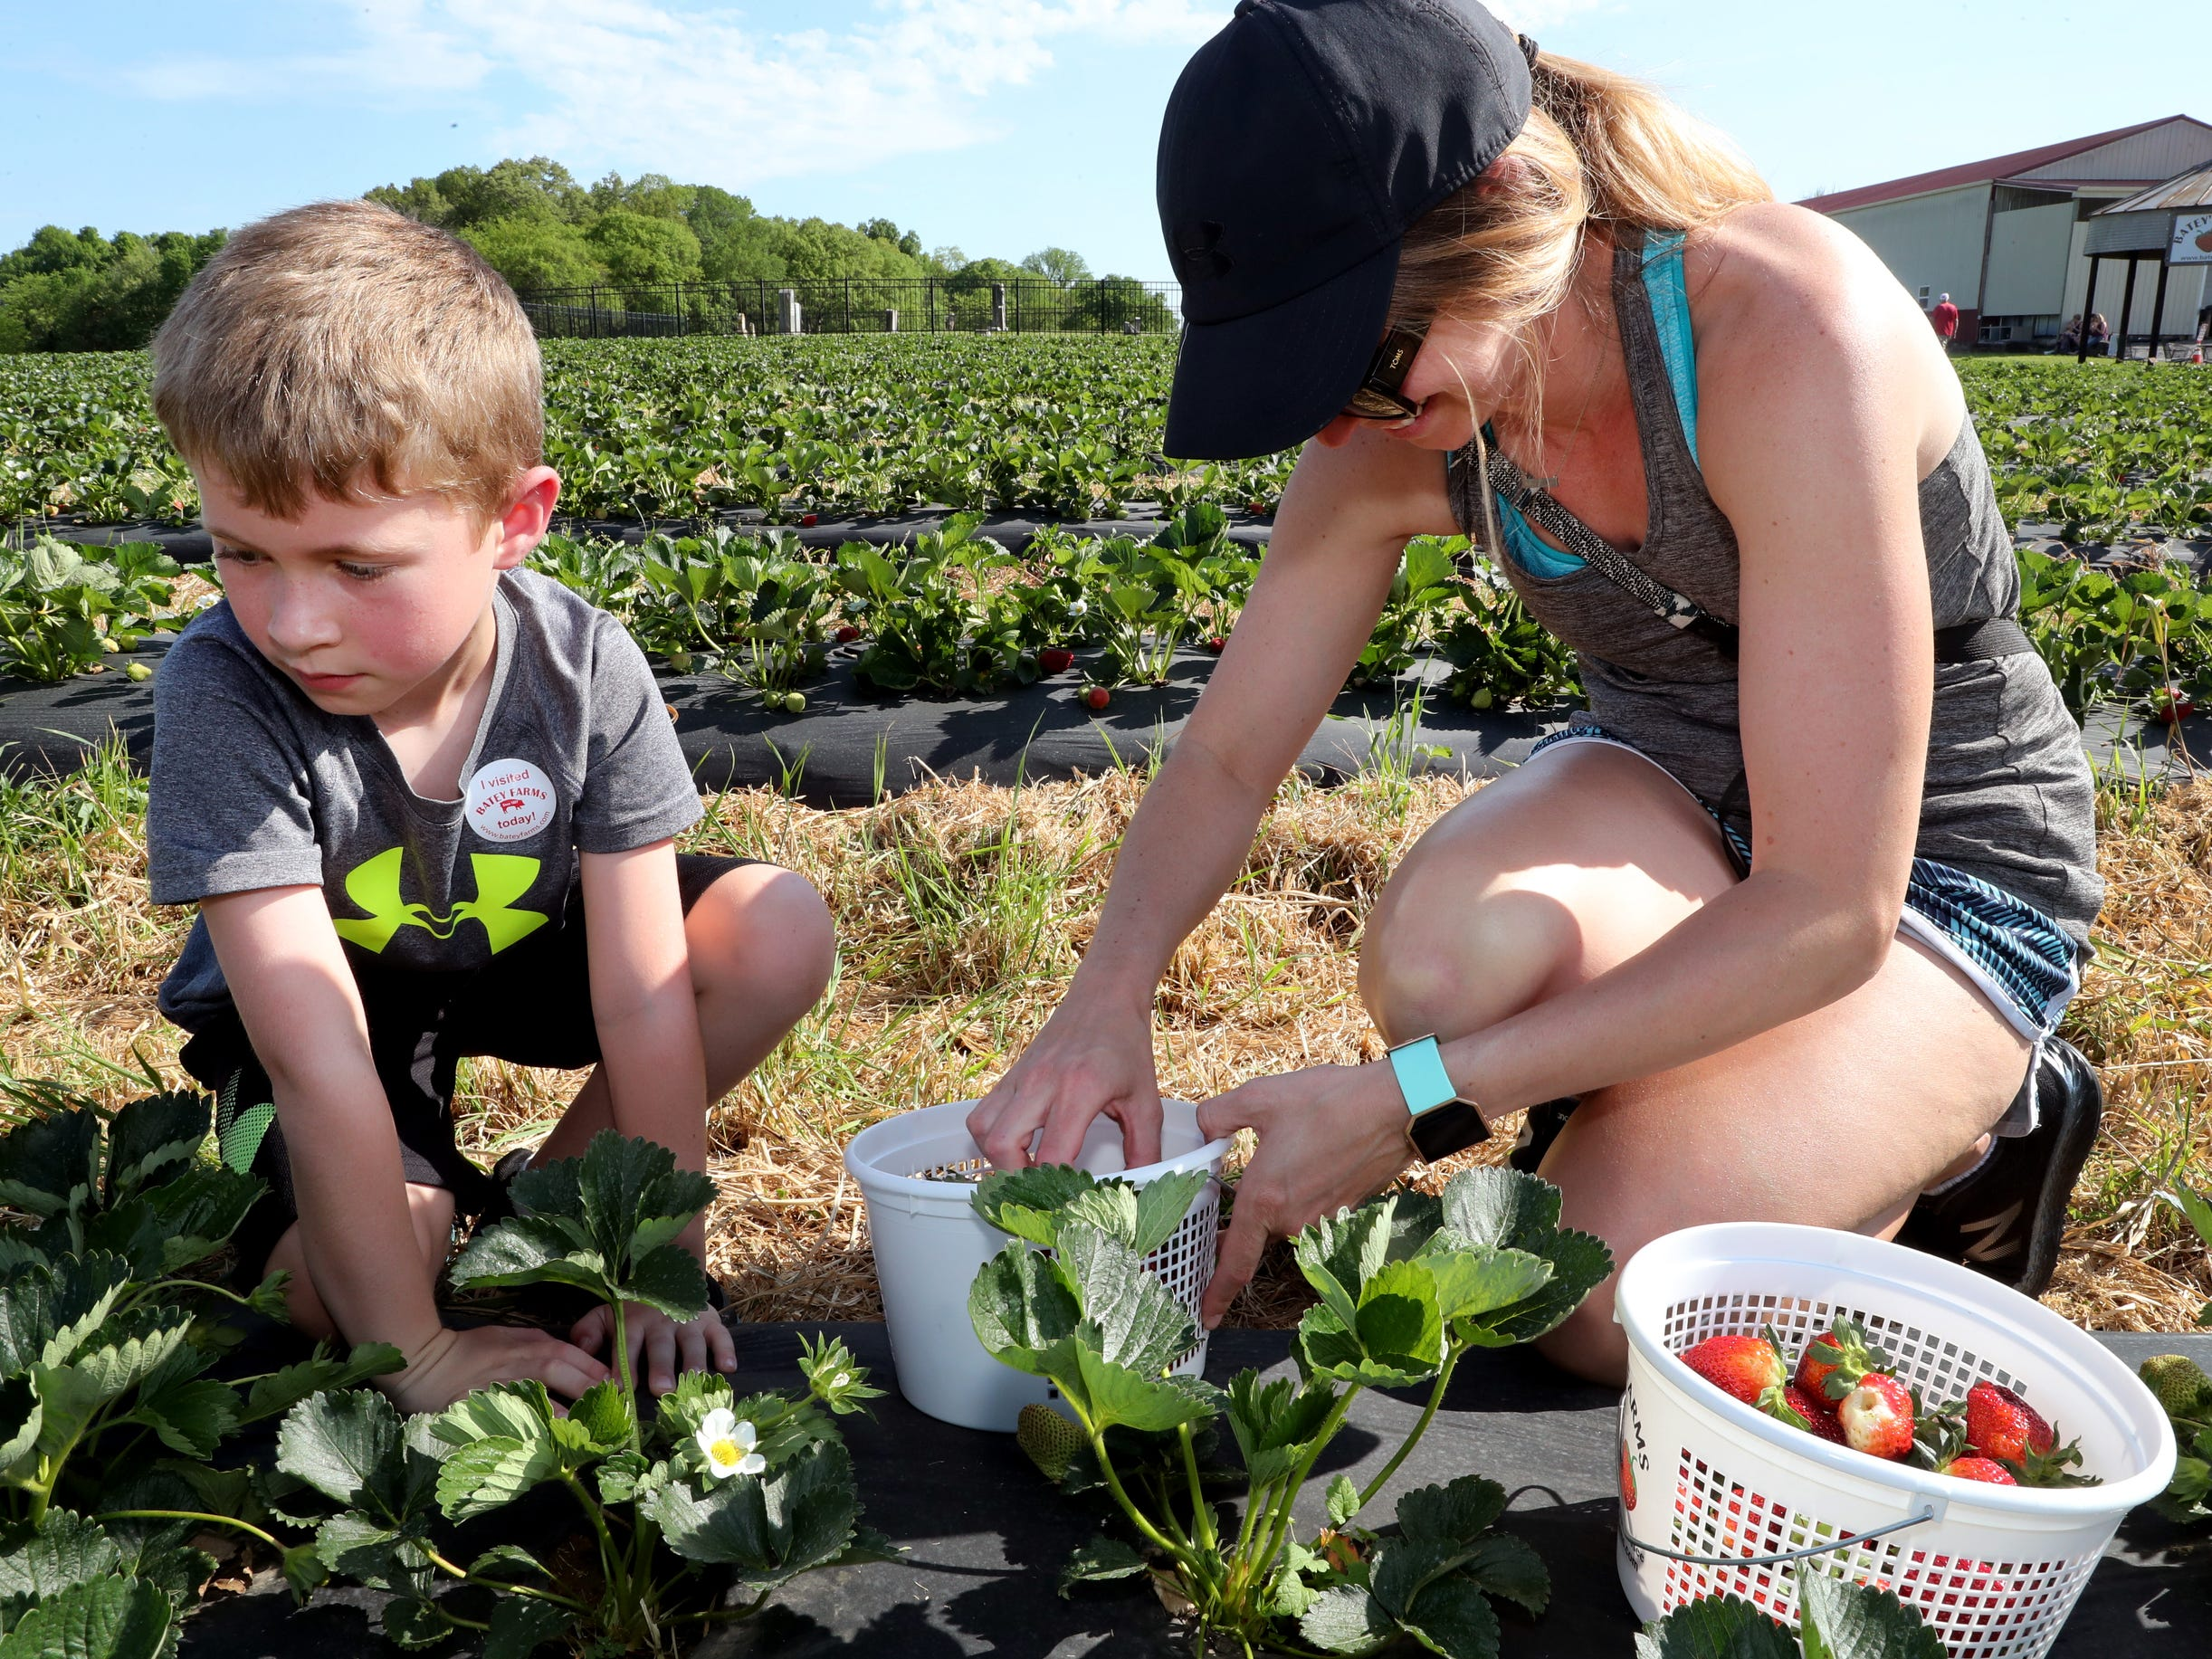 Hudson Billington, 7 and his mom Lynne Billington pick strawberries on Wednesday April 24, 2019, at Batey Farms in Murfreesboro.